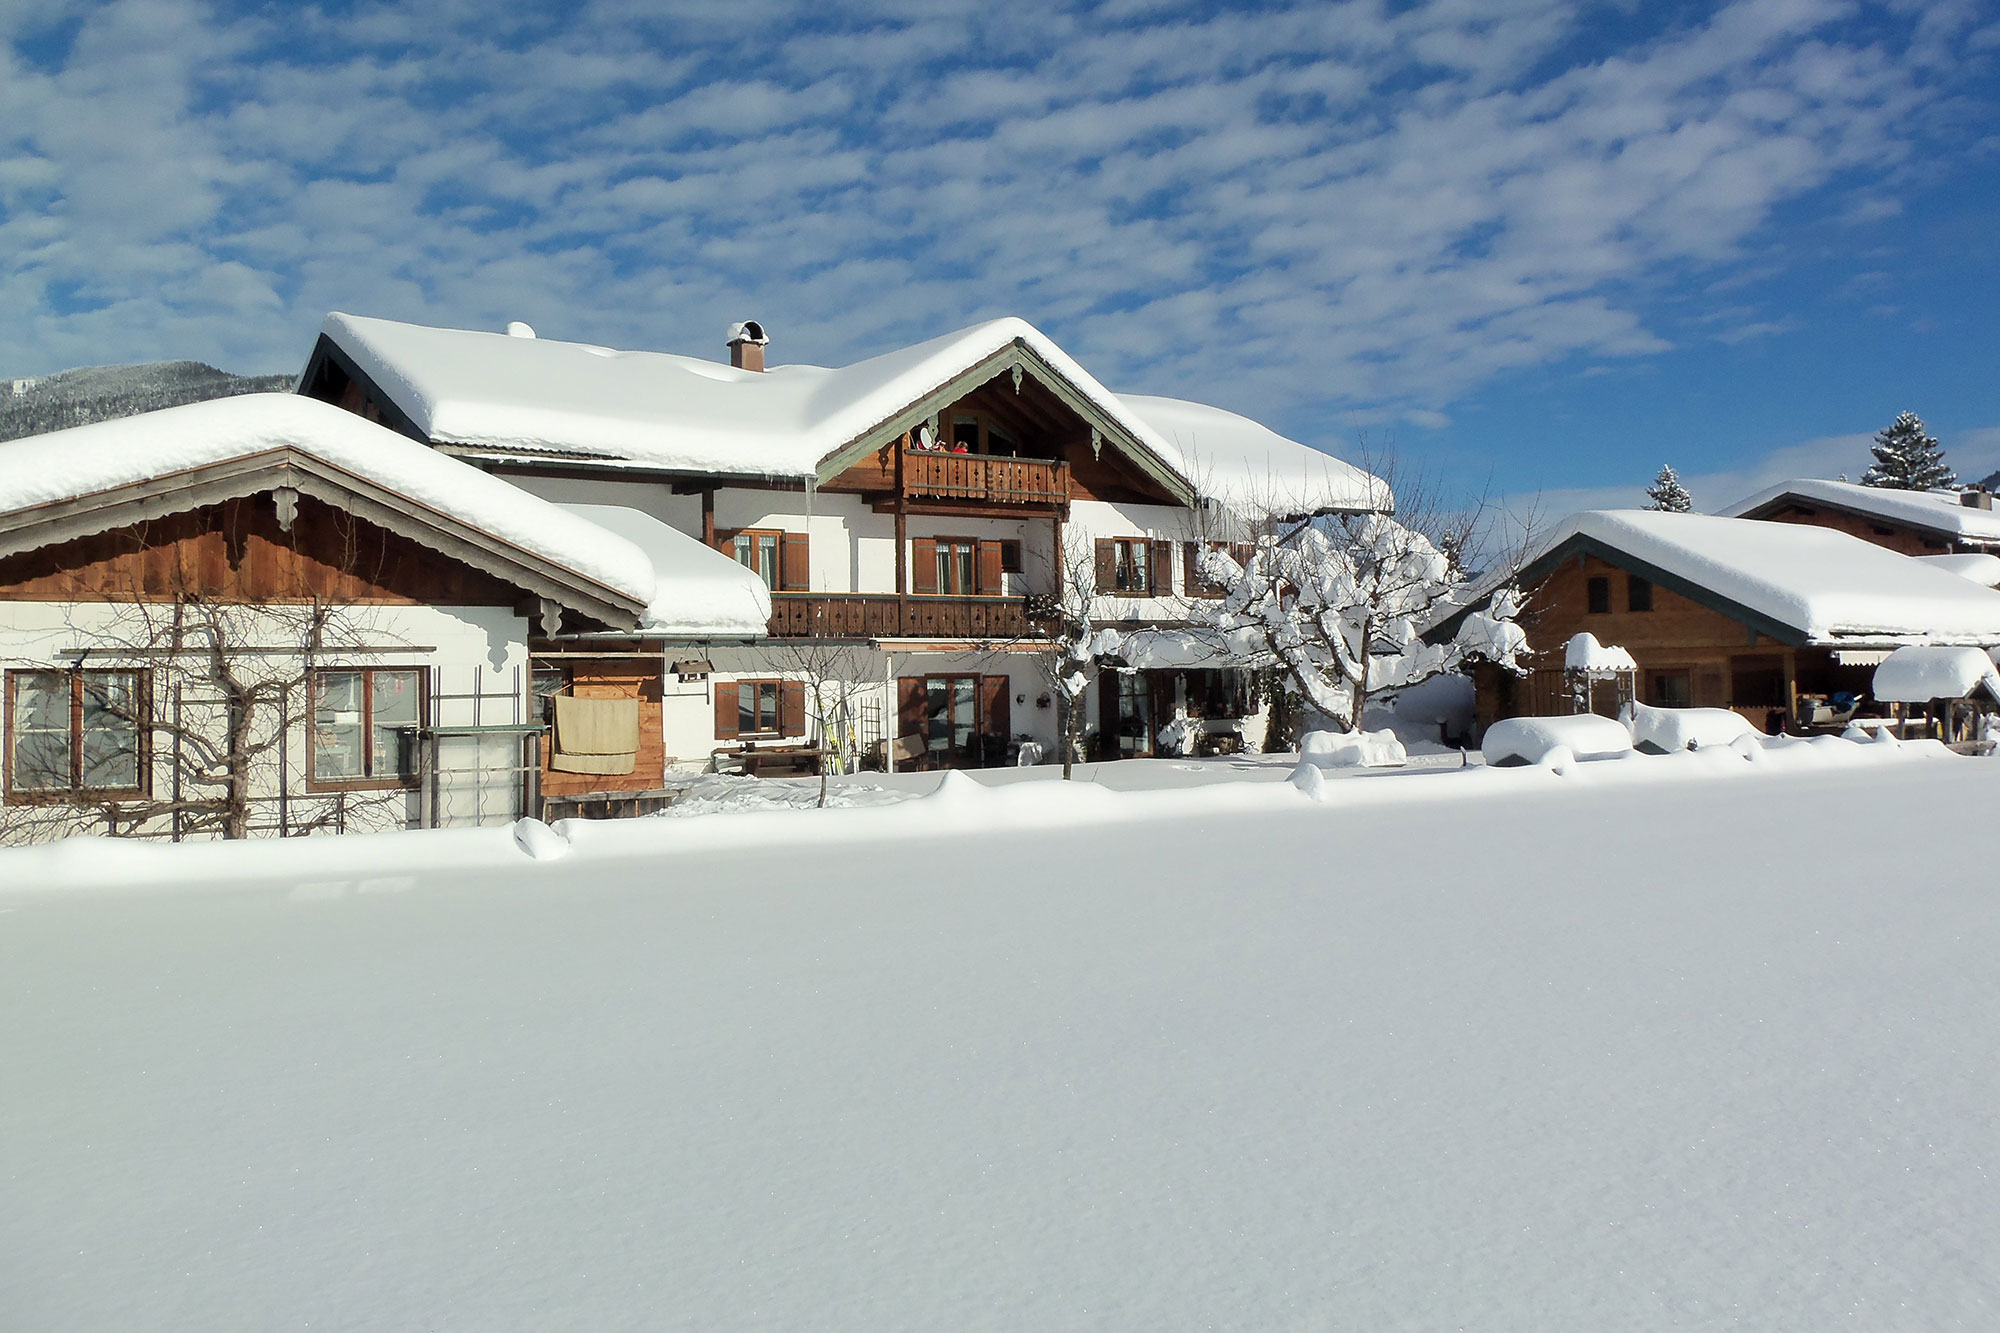 Haus Egger in Inzell